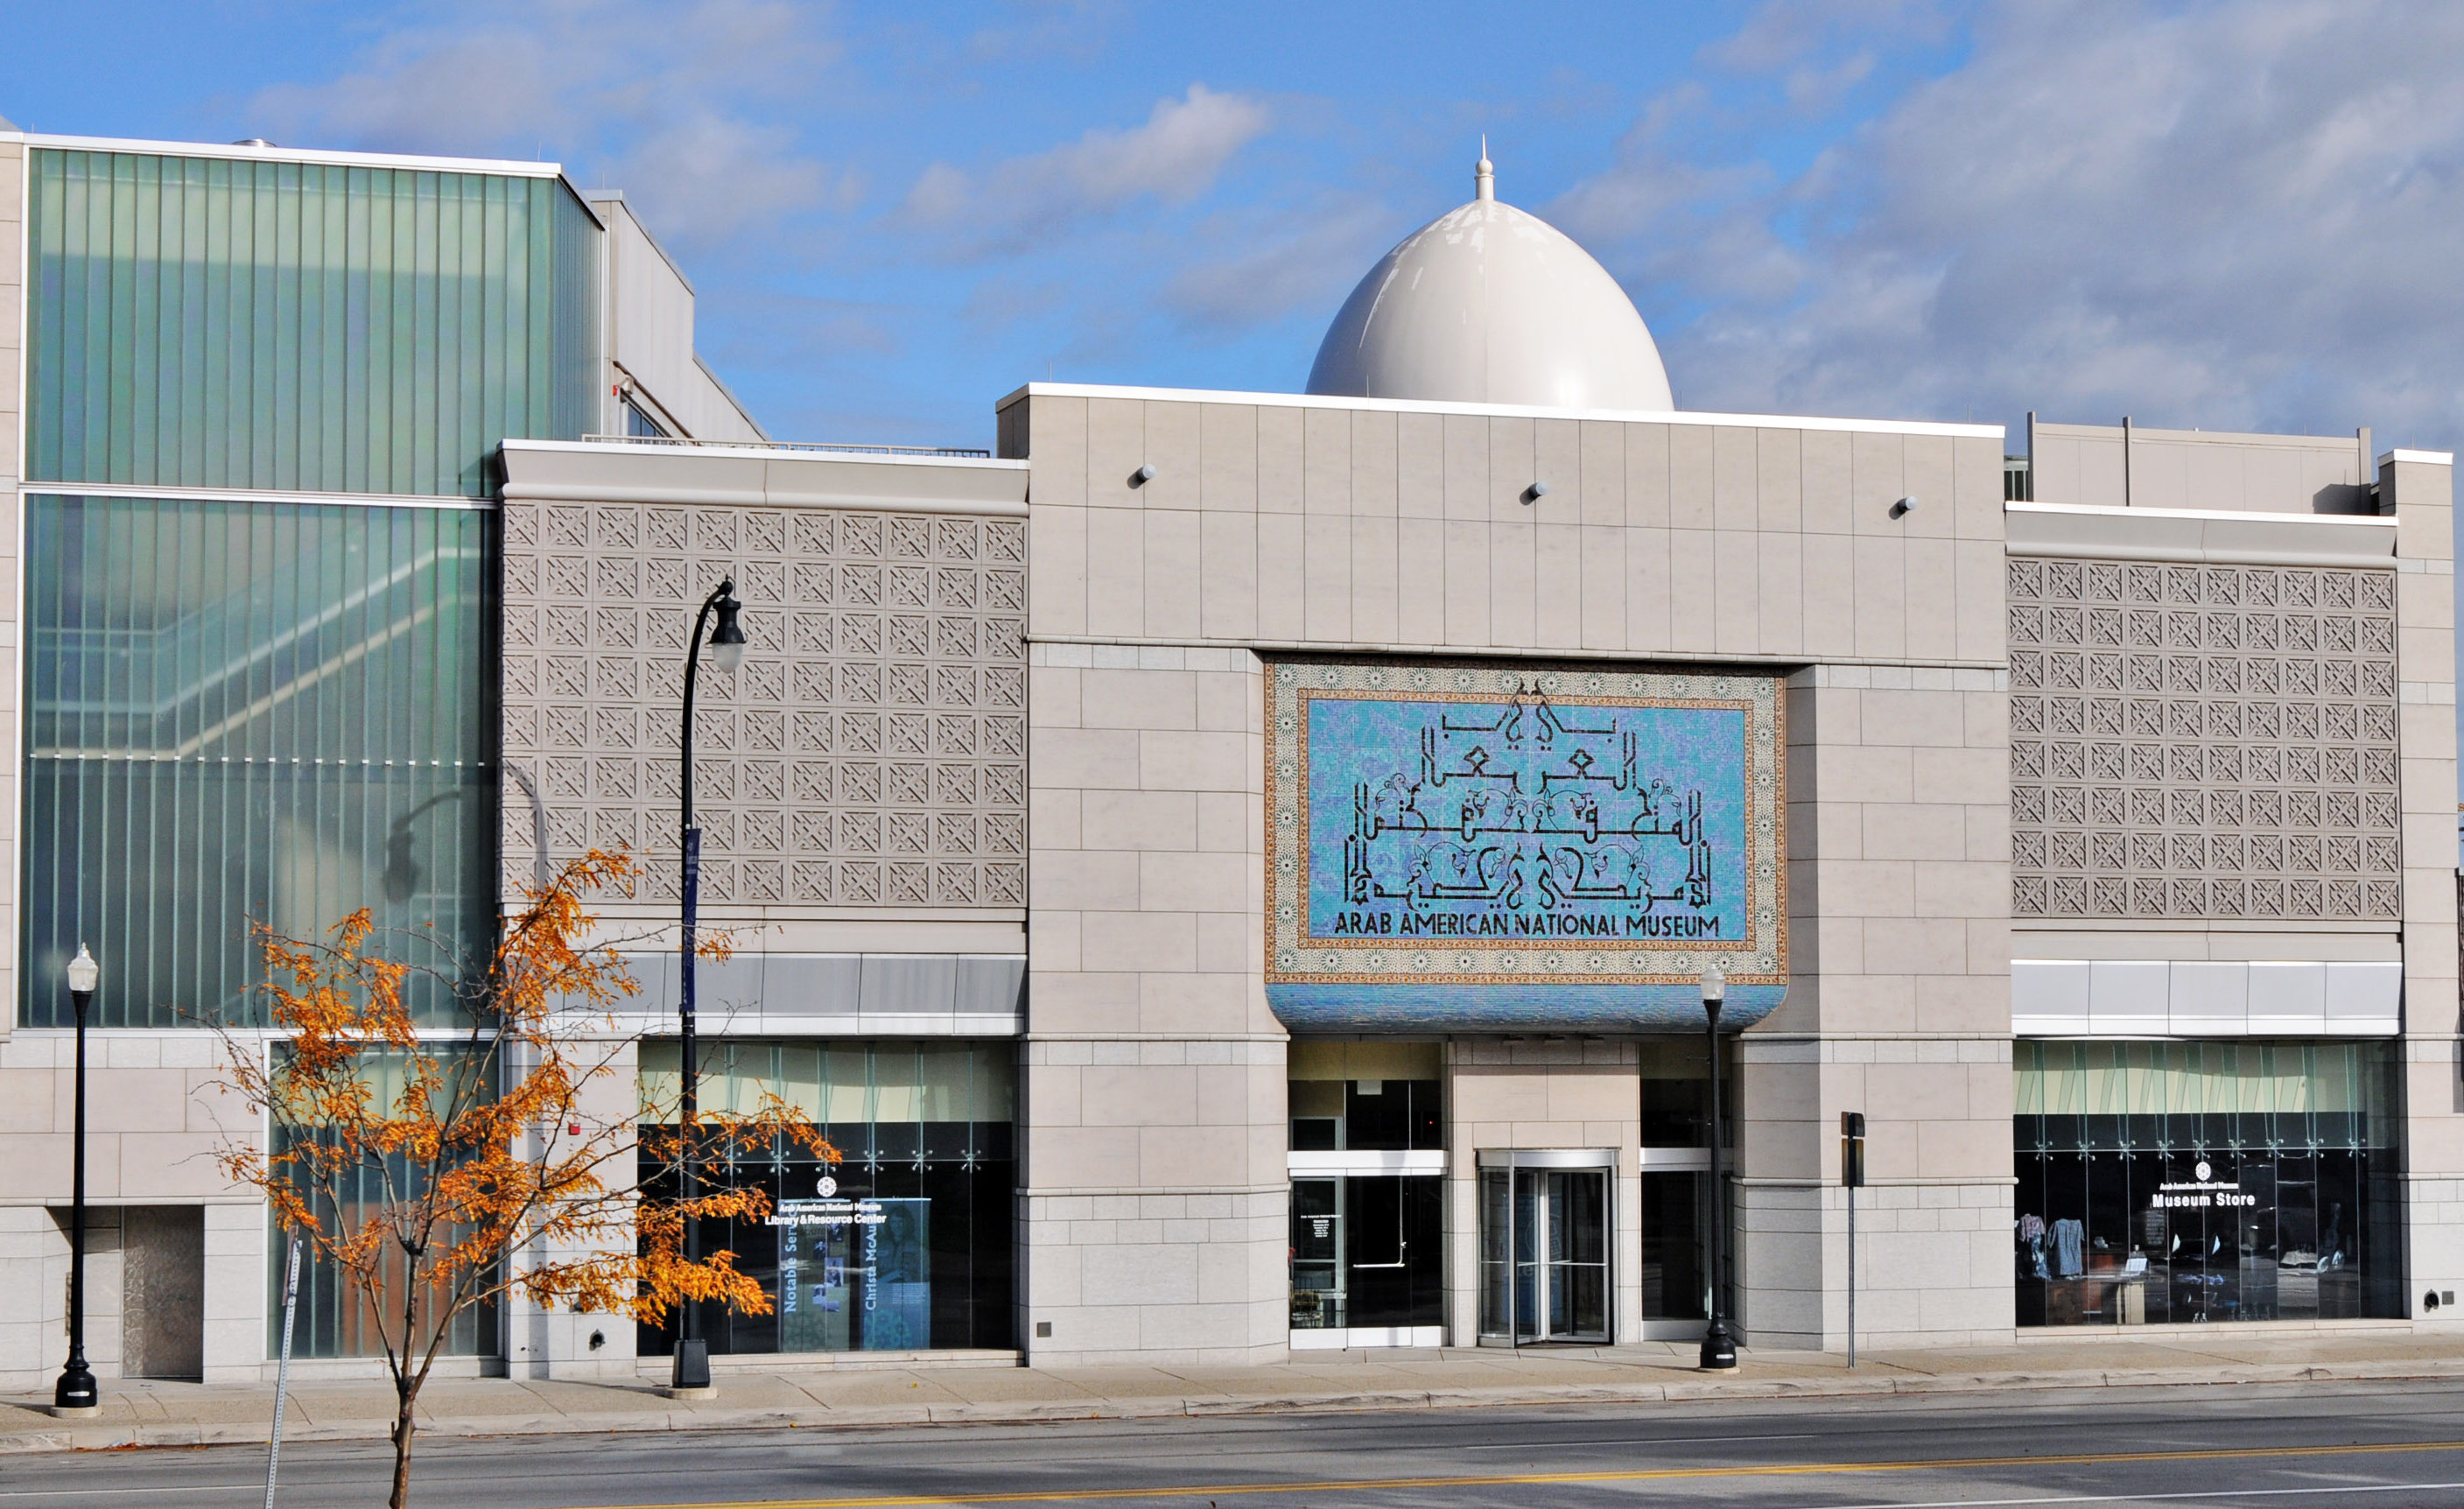 Arab American National Museum exterior